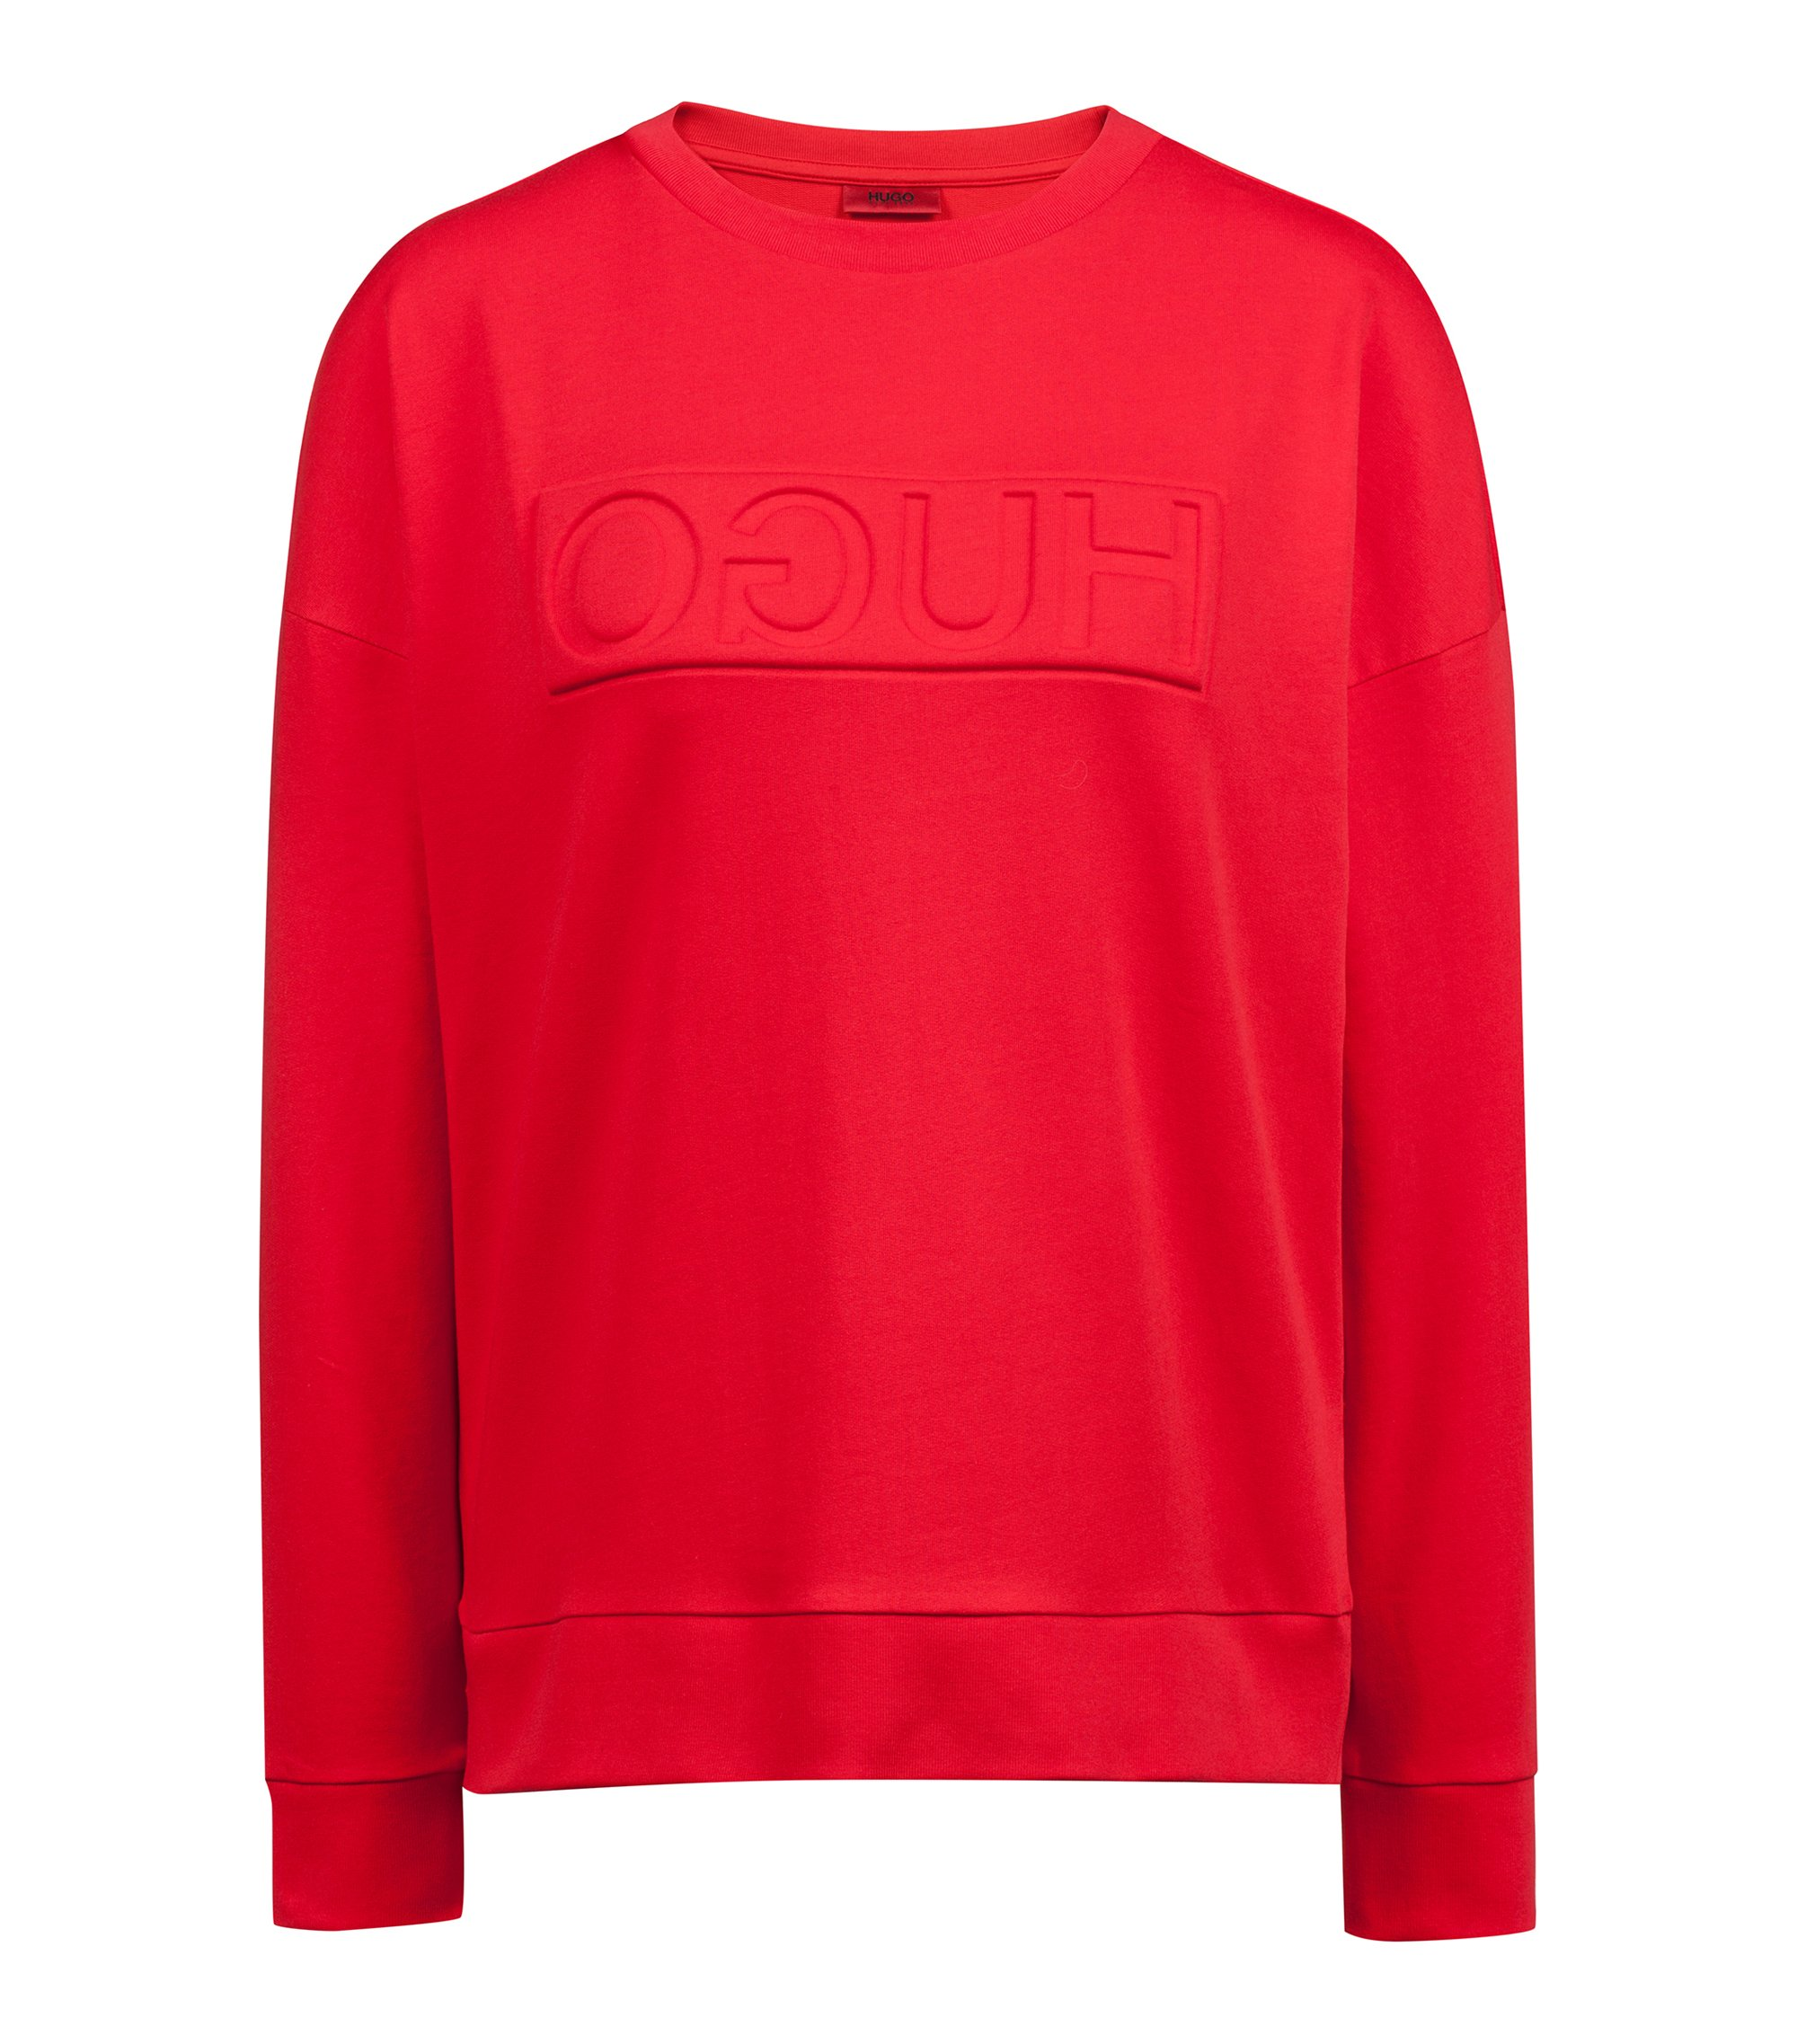 Sweat en molleton French Terry à logo inversé, Rouge